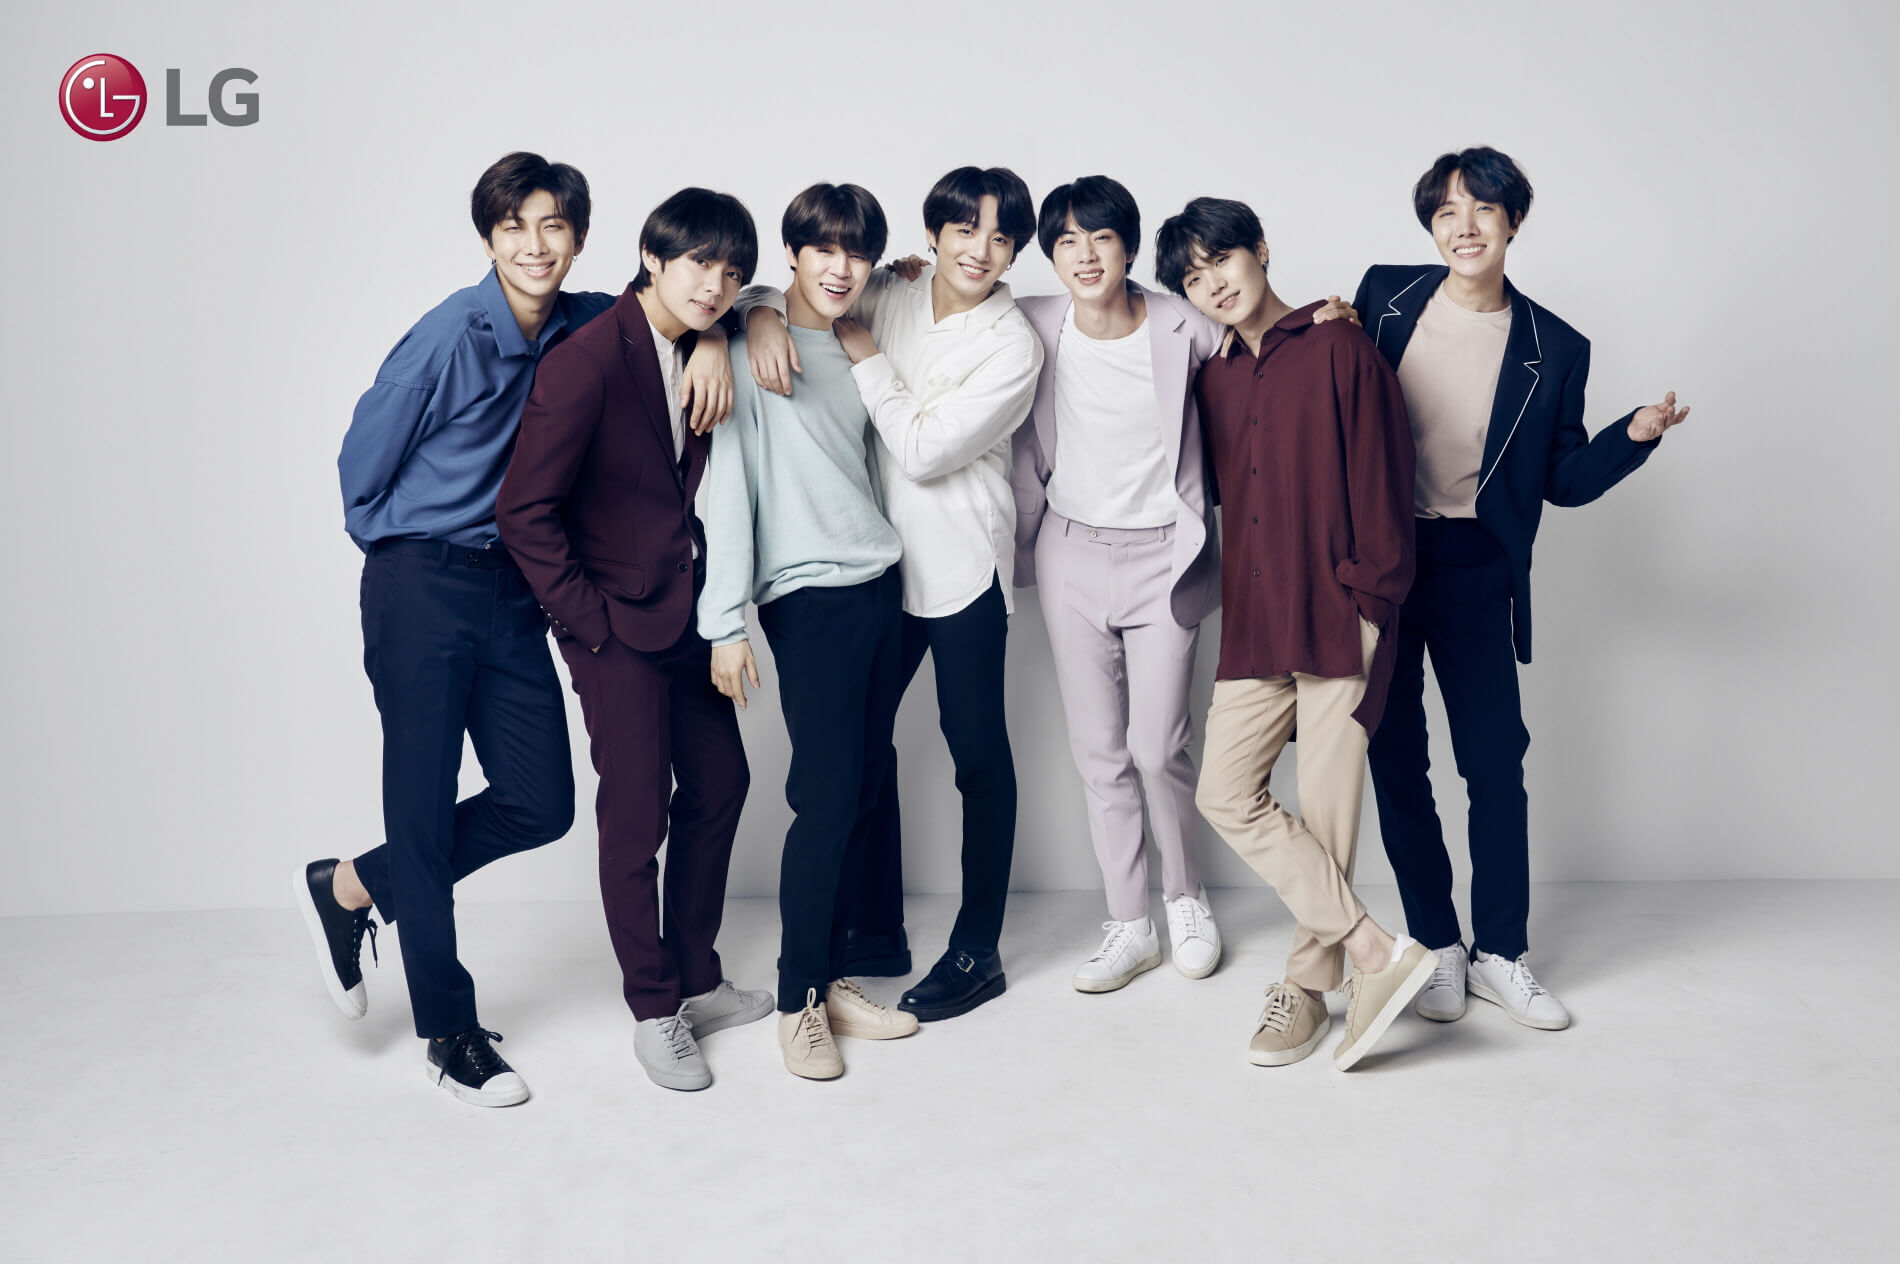 Bts Is Lg S Newest Global Mobile Brand Ambassadors